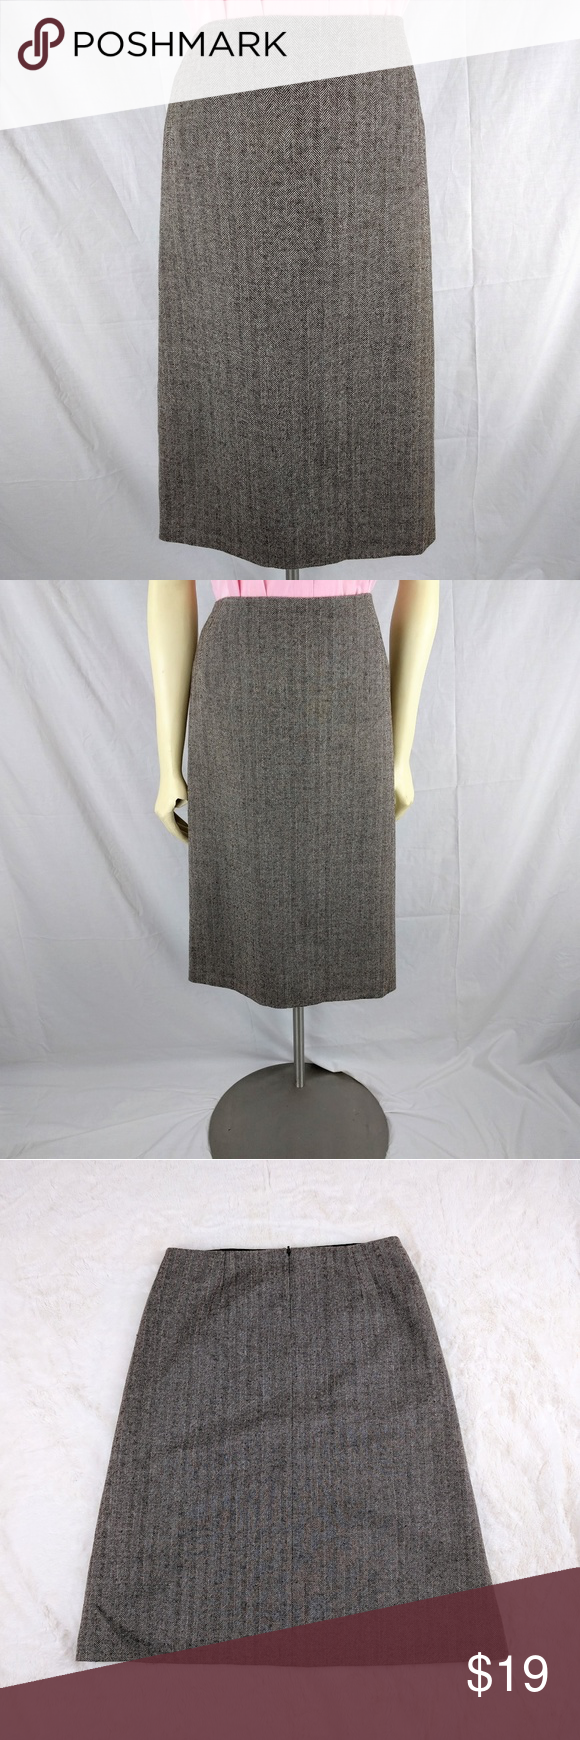 J. Crew factory A-line brown Wool Skirt J. Crew factory A-line skirt Color: brown 100% wool Back Zipper. Gently used. Very good condition. Lining: 100% acetate Dry clean  Waist: 32 in Hips: 40in Length: 26in J. Crew Factory Skirts Midi